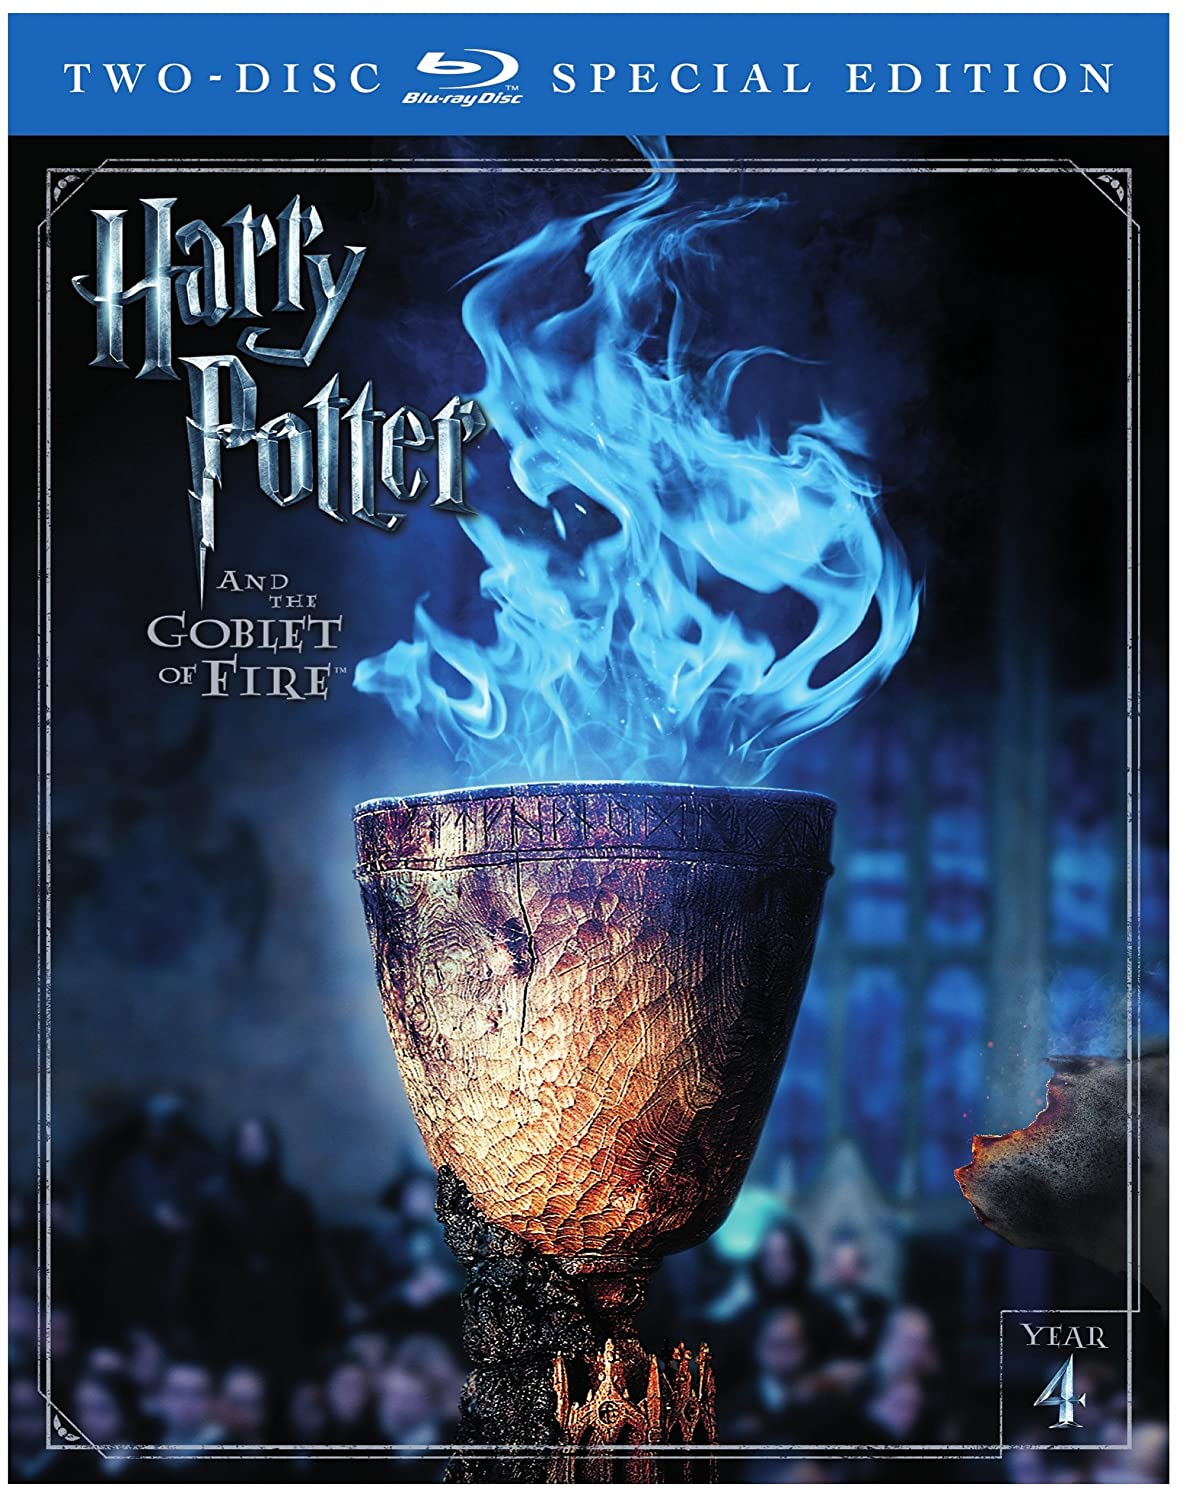 Harry Potter and the Goblet of Fire (2-Disc/Special Editions/BD) [Blu-ray]